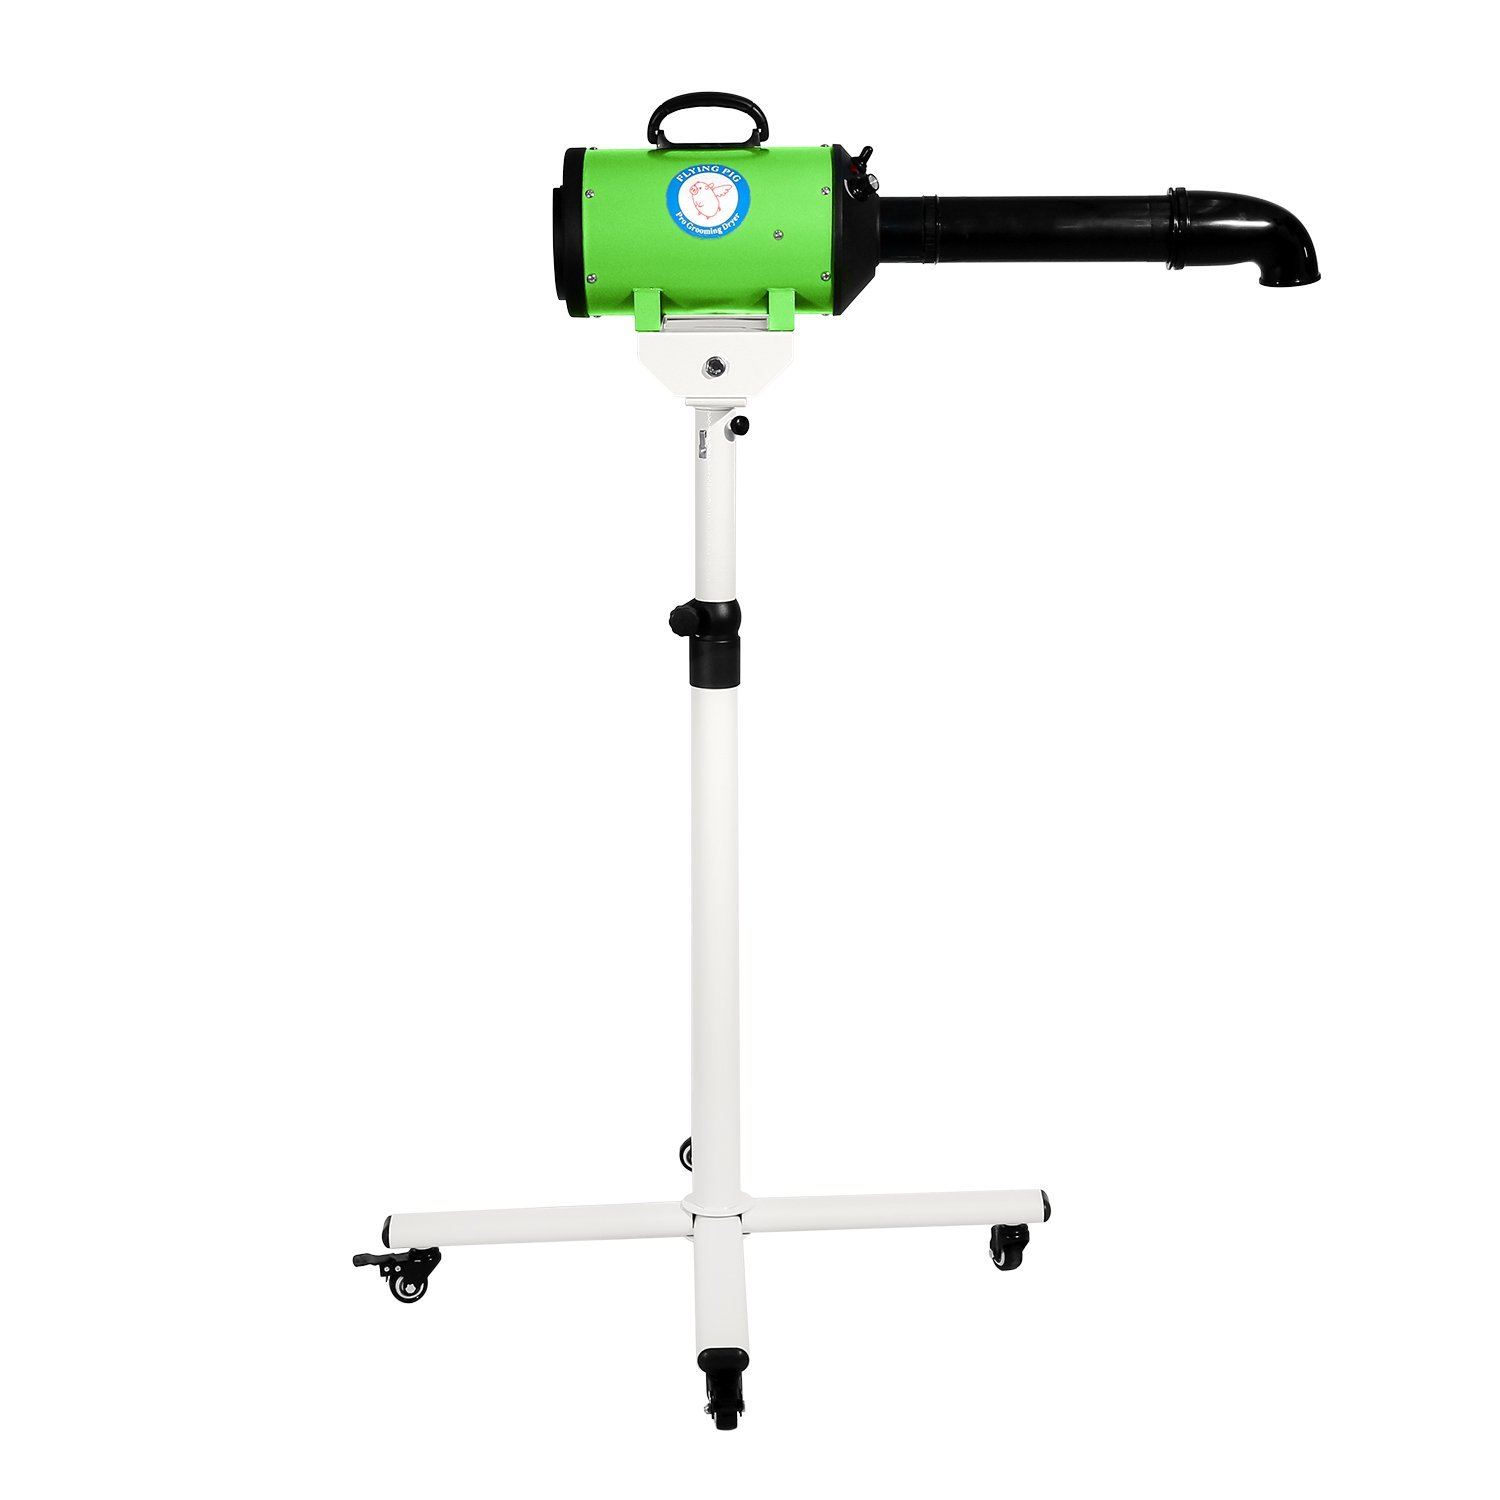 Flying Pig High Velocity Dog Pet Stand Grooming Dryer w/Variable Air Speed & Heat (Green) by Flying Pig Grooming